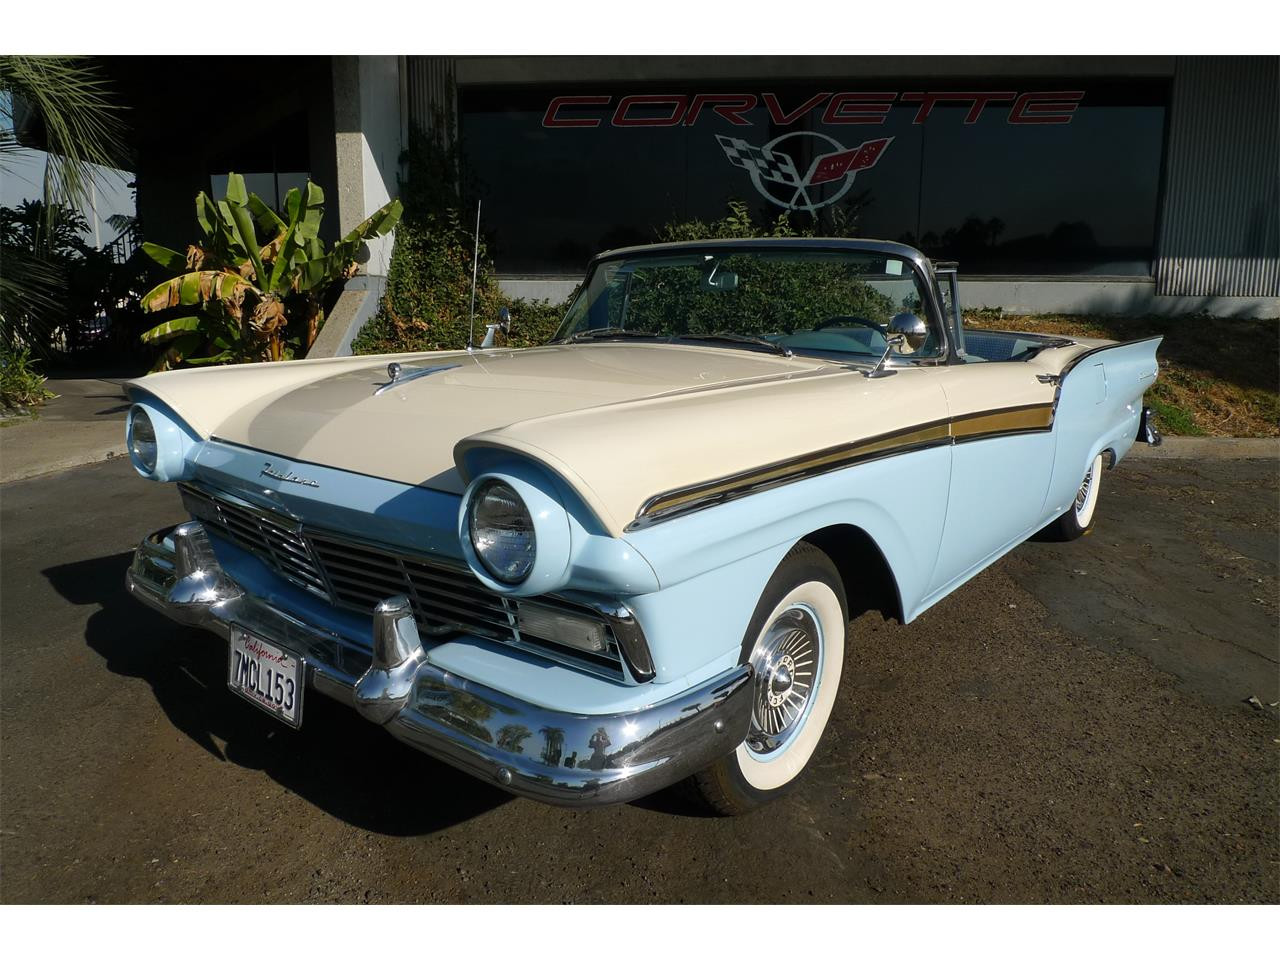 Large Picture of 1957 Ford Skyliner located in California - $29,975.00 Offered by Coast Corvette - MIVW